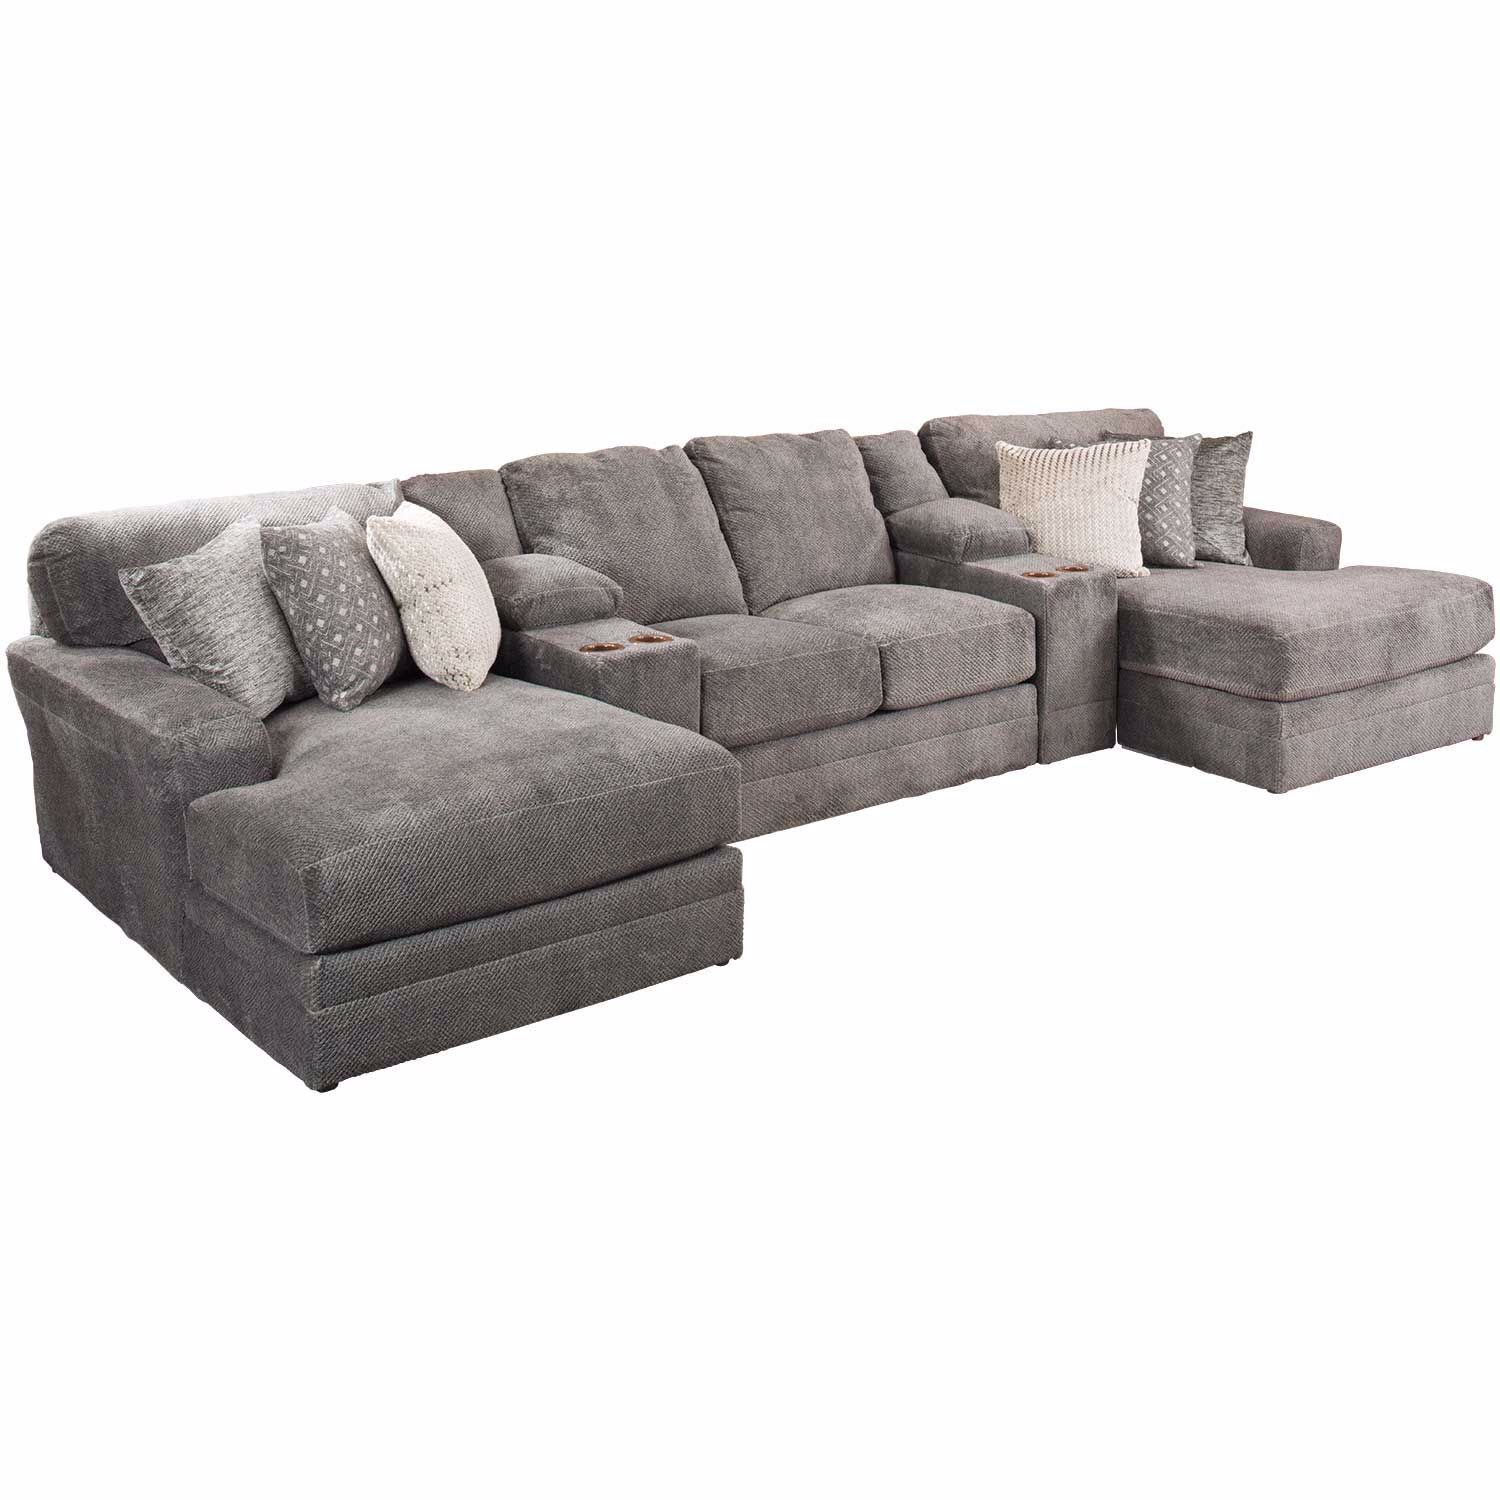 Mammoth 5 Piece Sectional With Laf And Raf Chaise Sectional Sofa